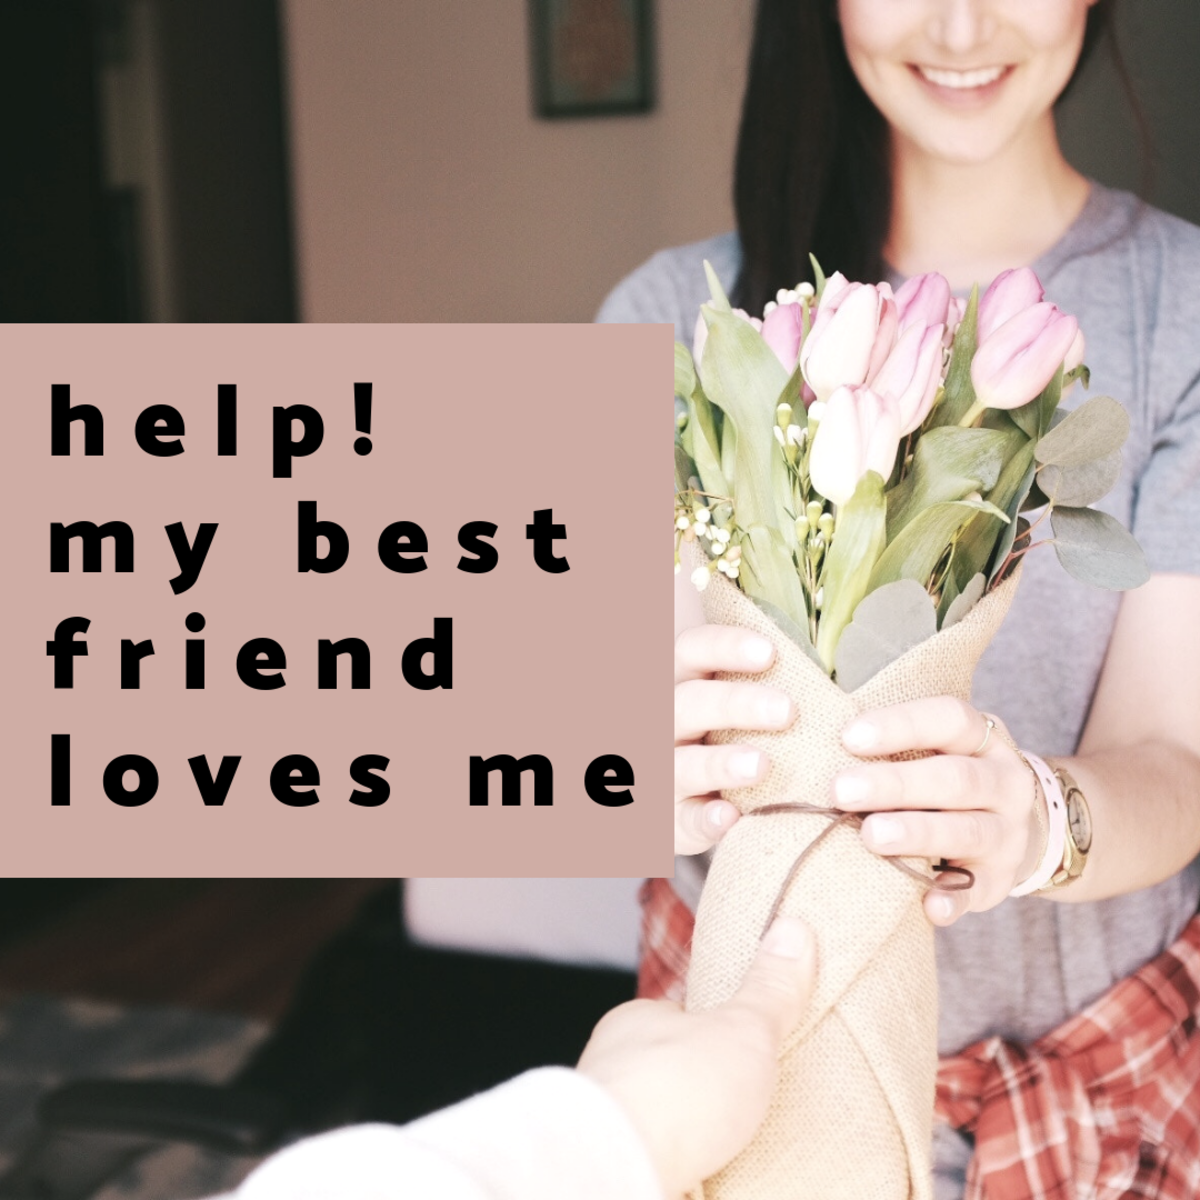 My Best Friend Is in Love With Me! What Should I Do?